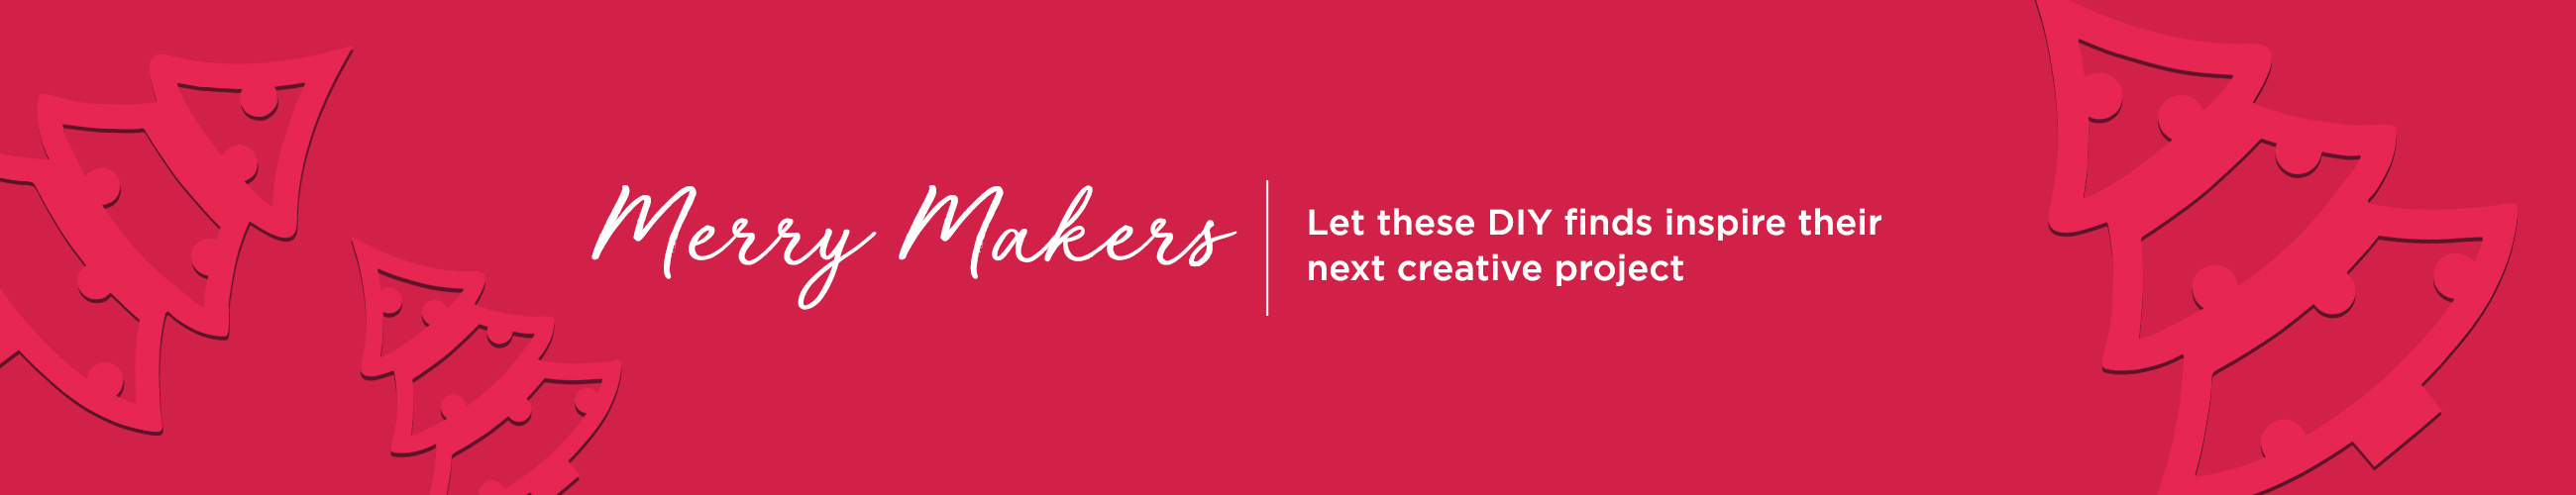 Merry Makers. Let these DIY finds inspire their next creative project